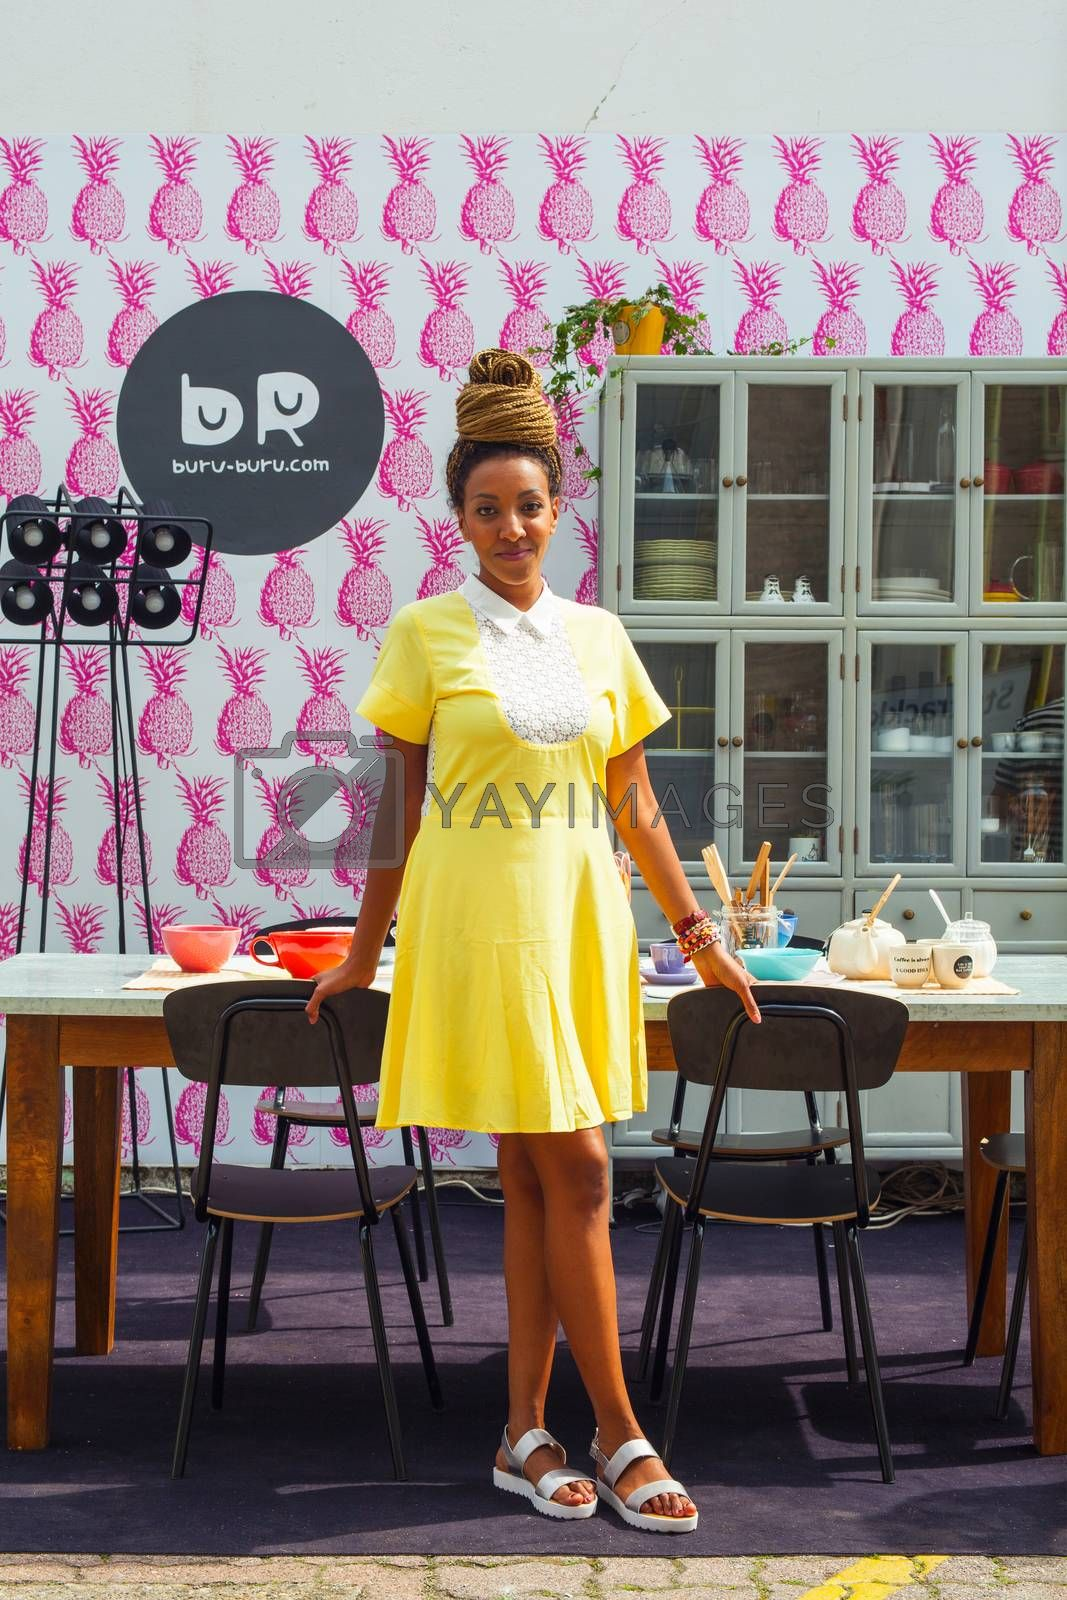 MILAN, ITALY - APRIL 16: Pretty young black girl in the kitchen room at Buru-buru stand in the Tortona space location during Milan Design week on April 16, 2015